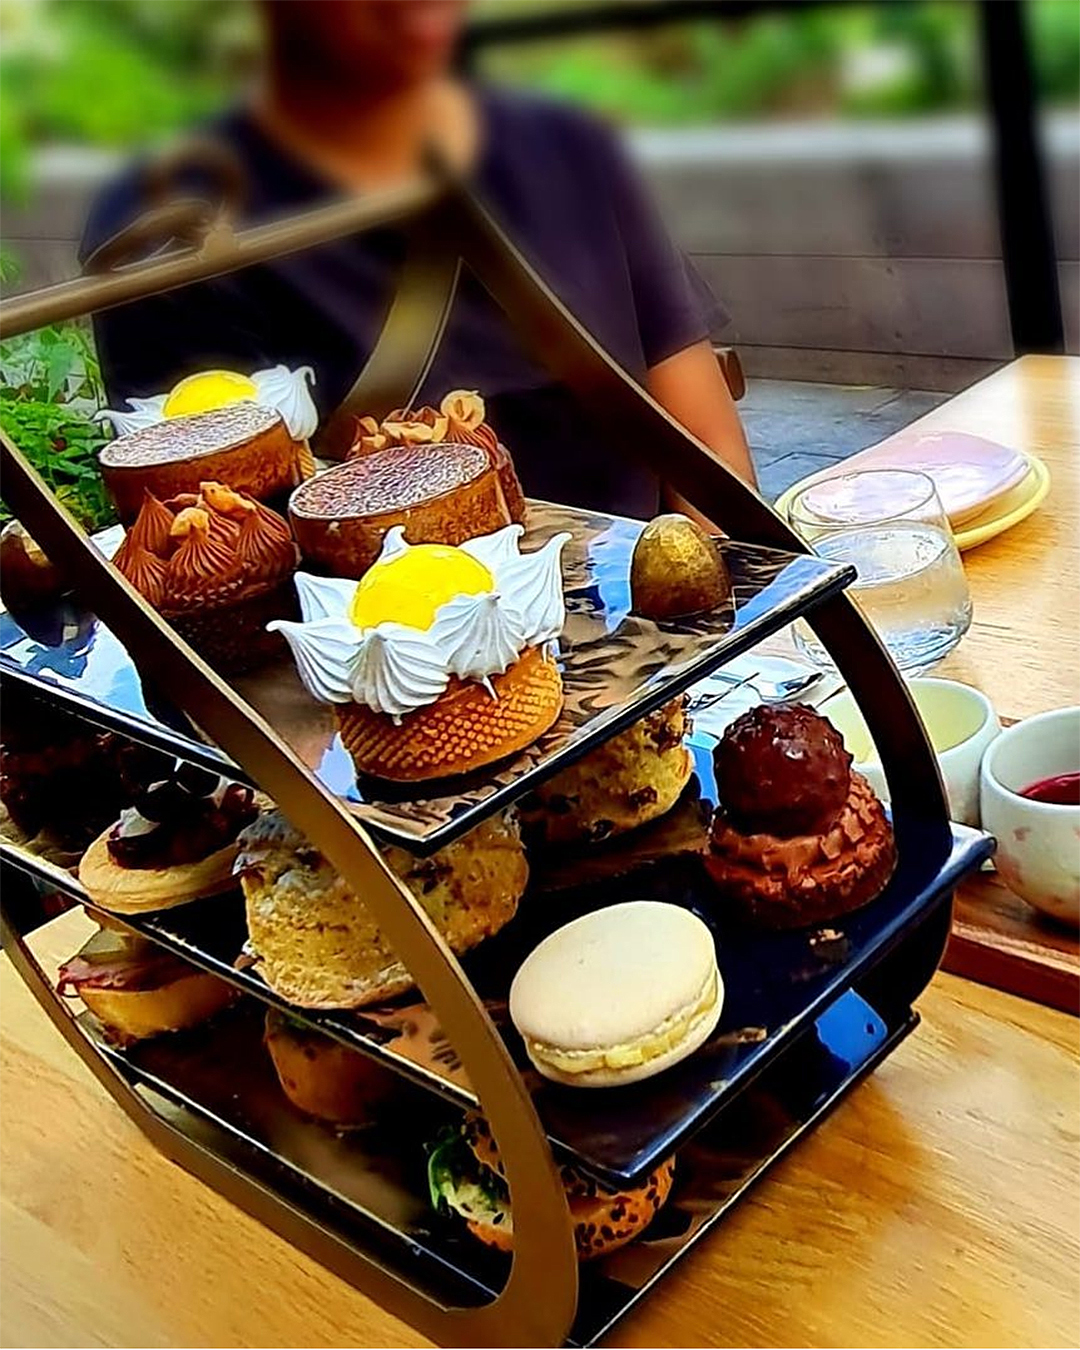 The delicious afternoon tea at Miann Chocolate Factory.